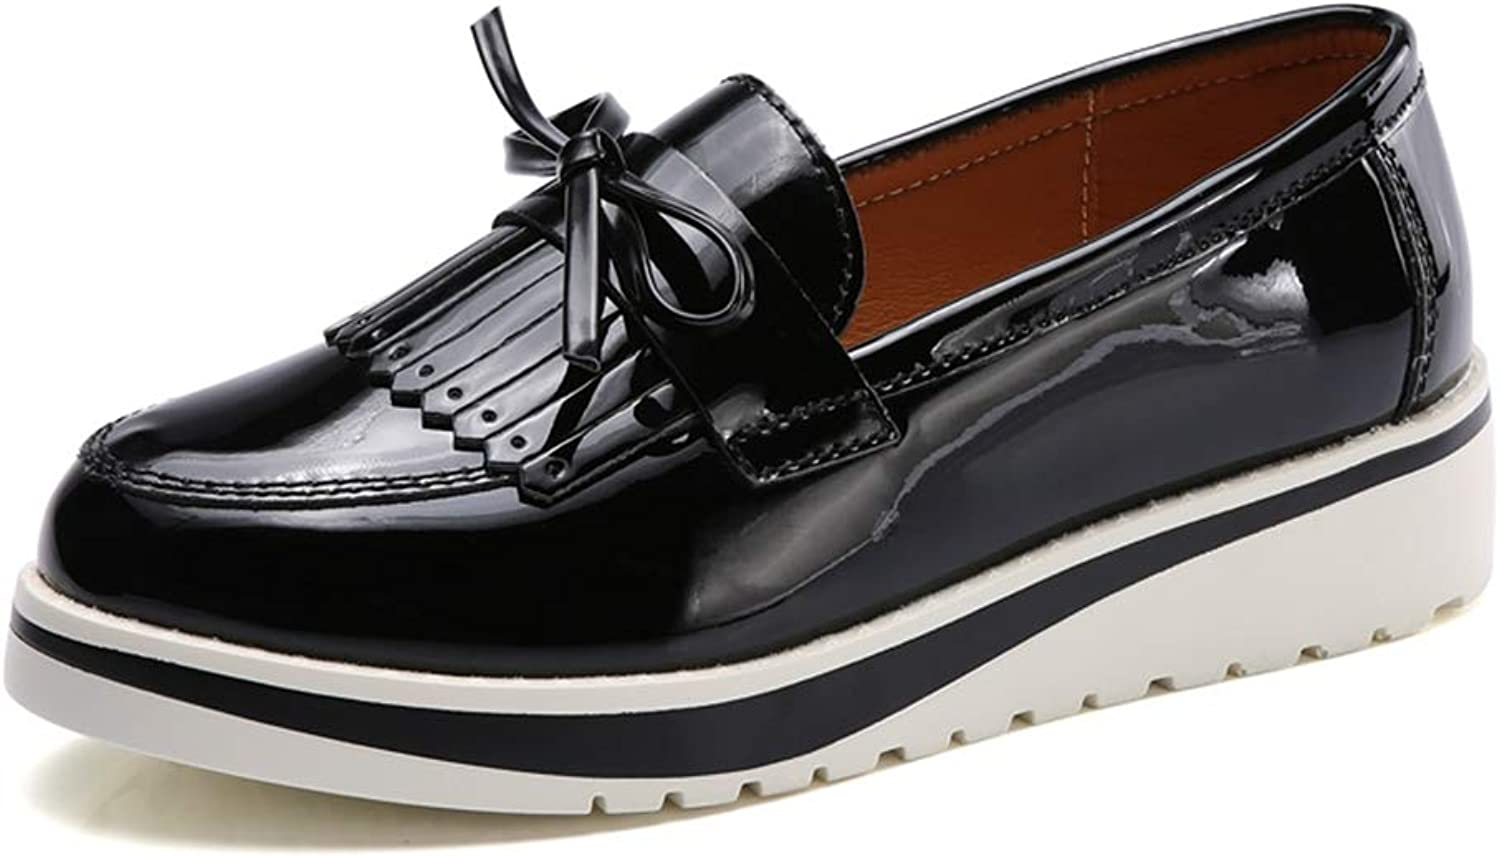 T-JULY Women Flat Casual shoes Loafers Patent Leather Slip on Fringe Platform shoes with Butterfly-Knot